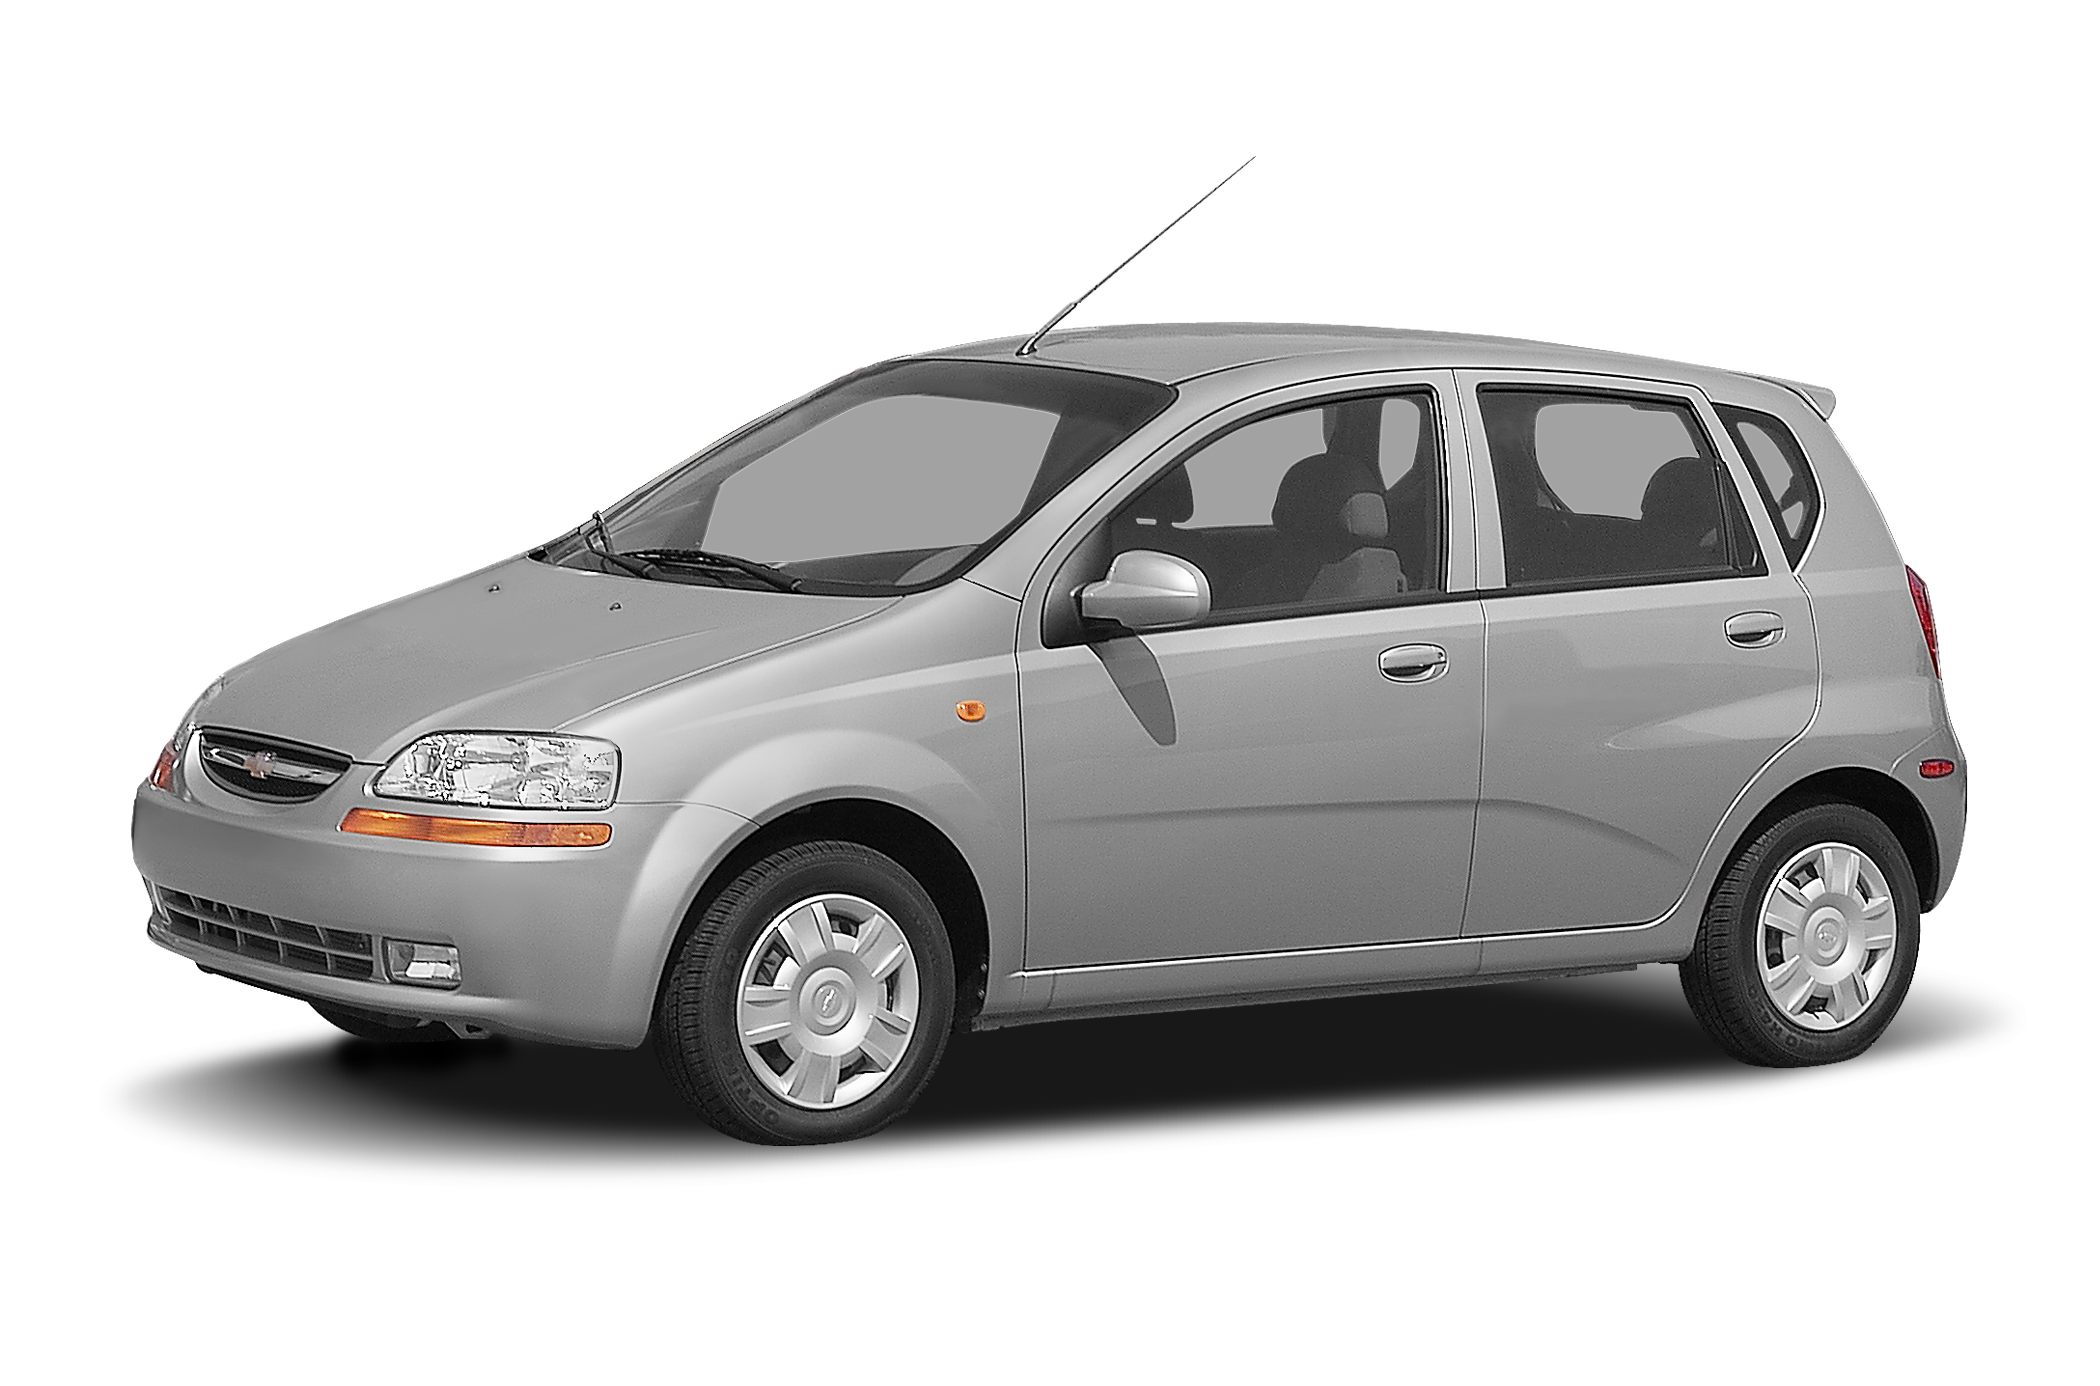 2008 Chevrolet Aveo 5 LS Hatchback for sale in Los Angeles for $7,995 with 66,890 miles